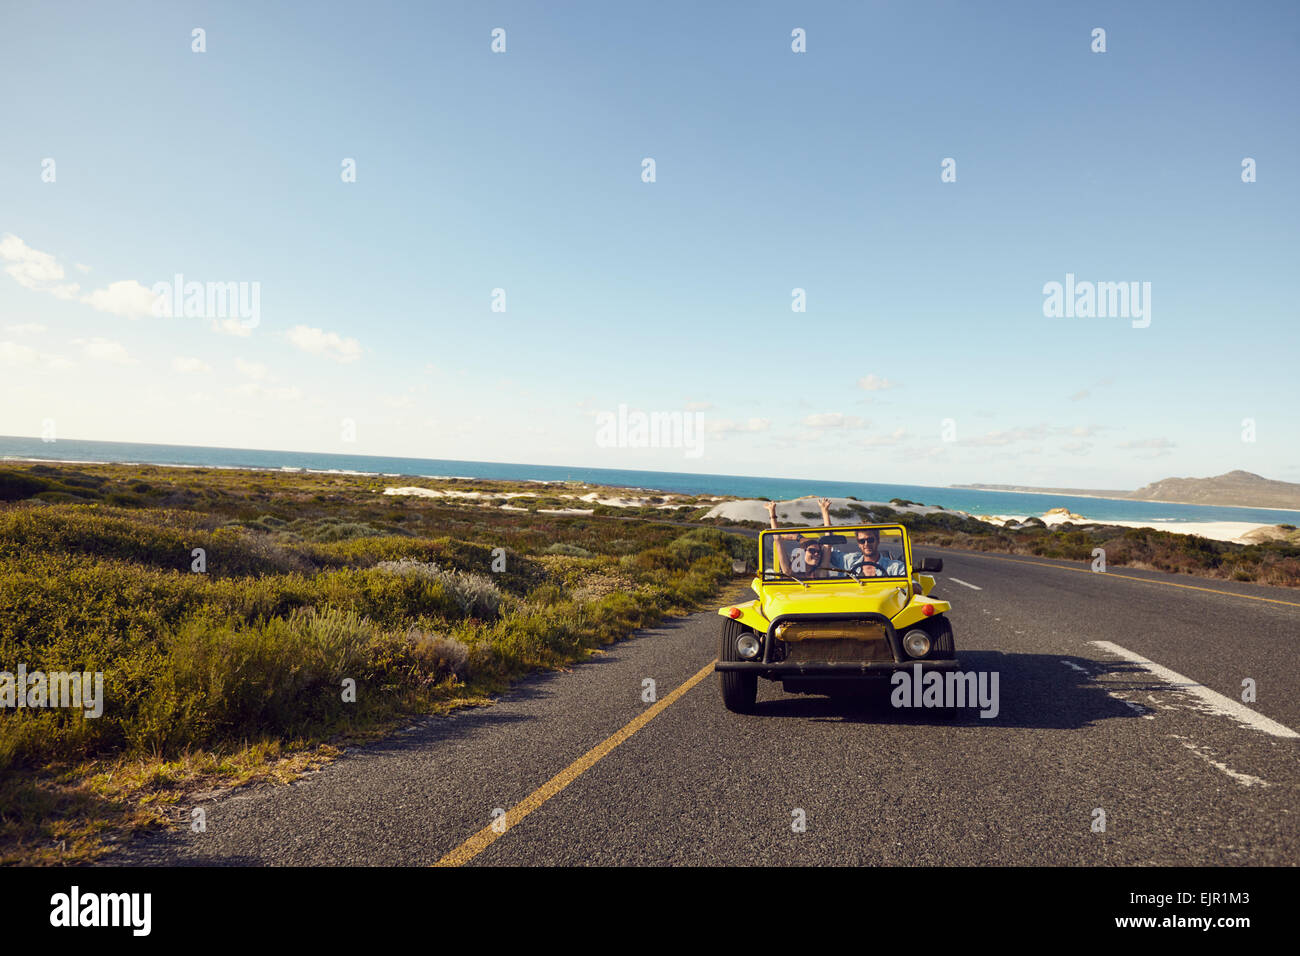 Young couple driving down an open road excited to be on a roadtrip. Happy couple driving a car with their arms raised. - Stock Image